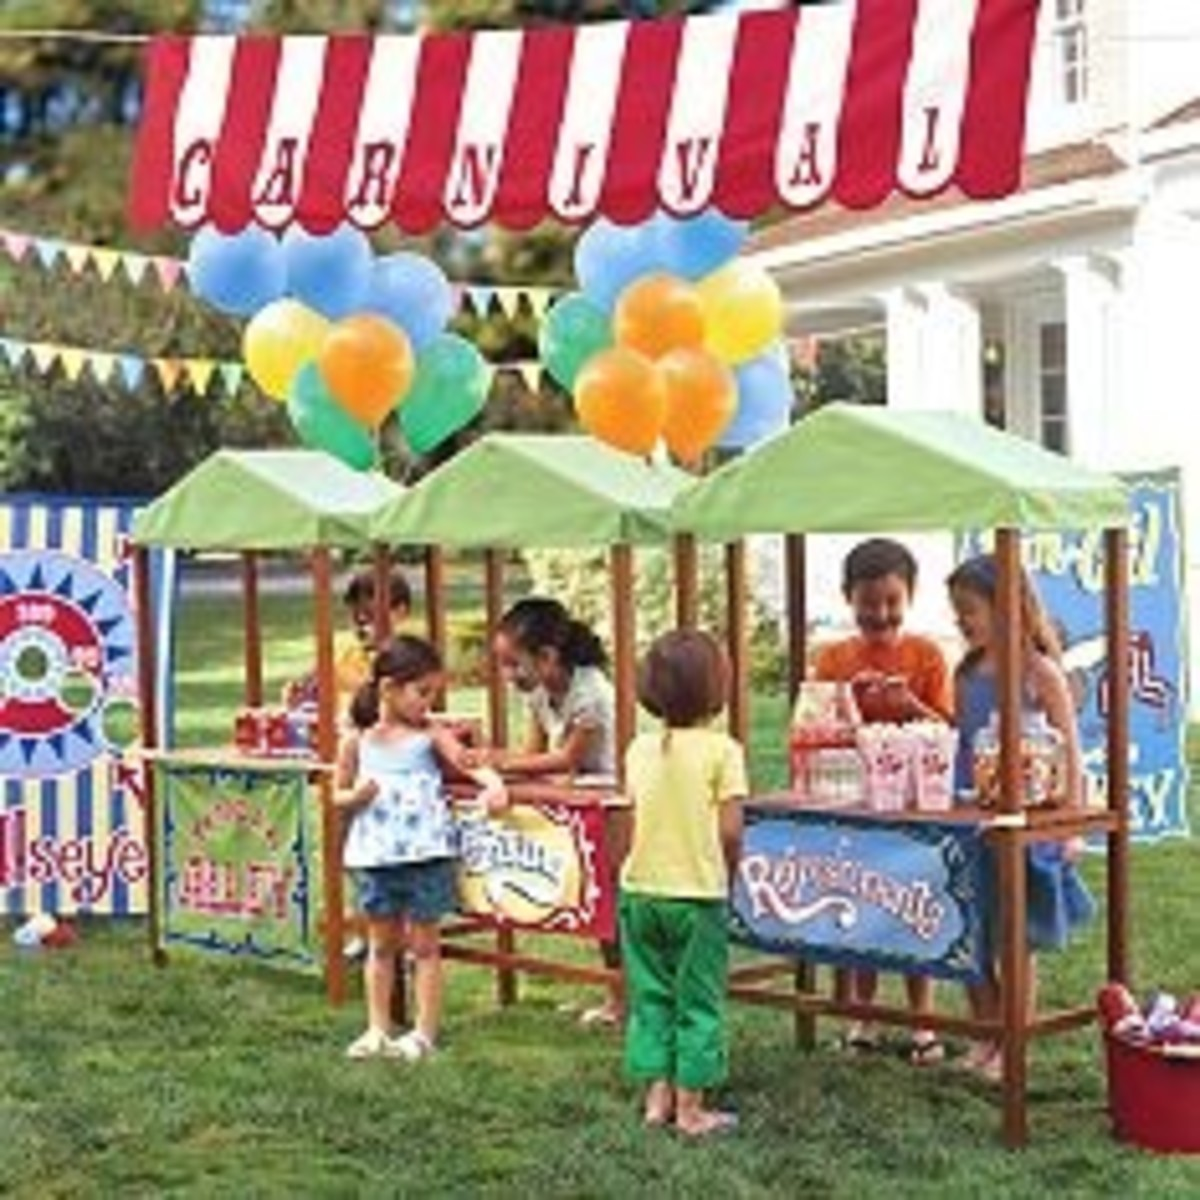 carnival-theme-birthday-party-plan-ideas-games